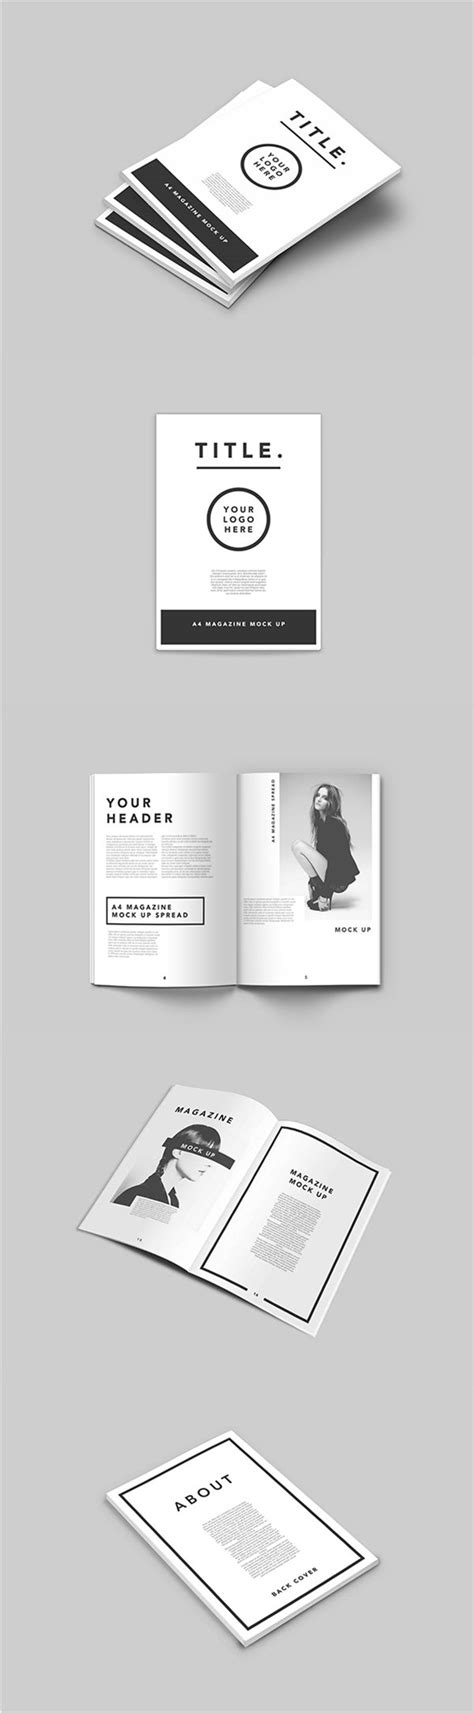 75 Free Psd Magazine Book Cover Brochure Mock Ups Magazine Cover Mockup Template